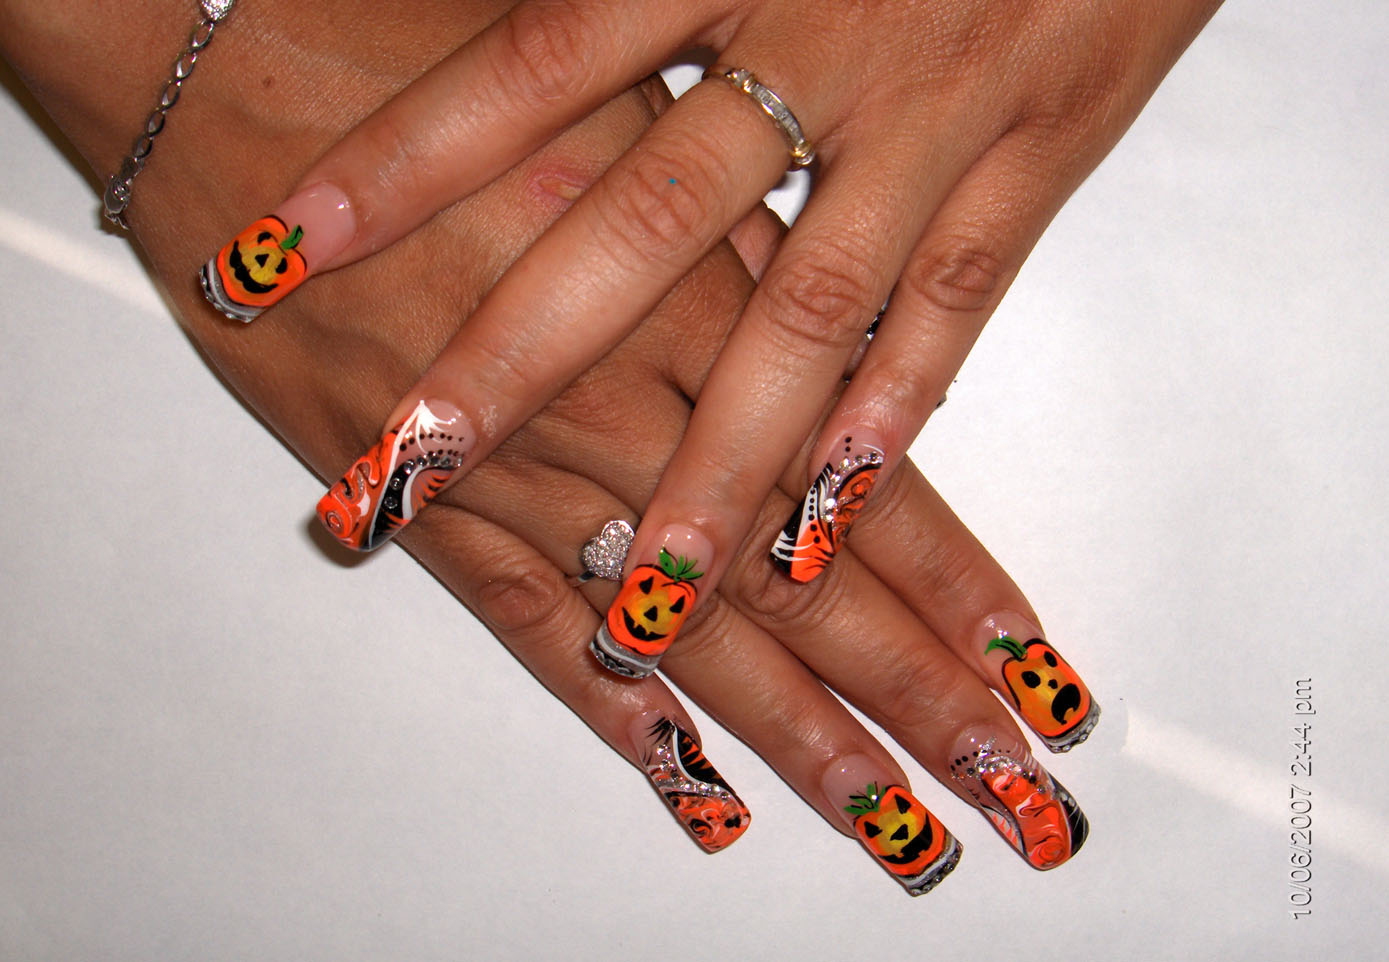 Nail art can be the finishing touch on your costume. (Photo: sekretservice.org)